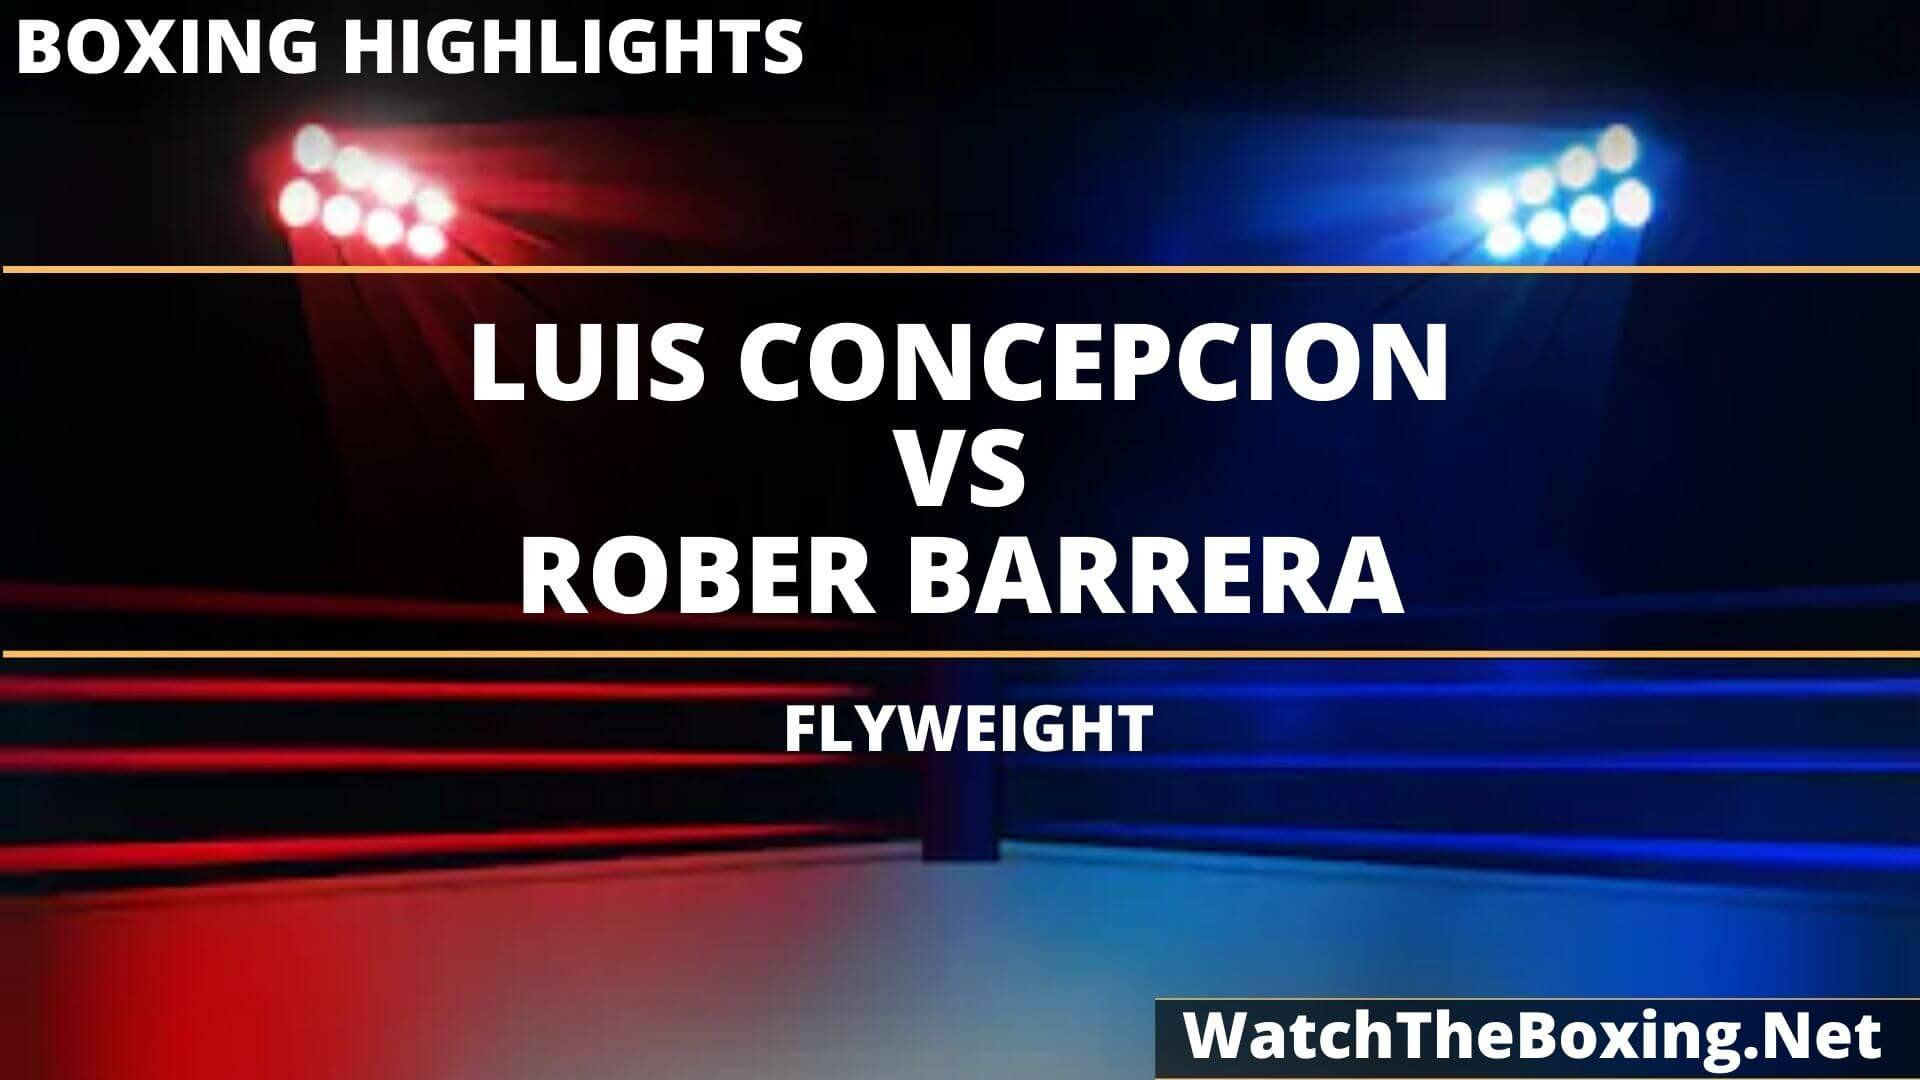 Luis Concepcion Vs Rober Barrera Highlights 2020 | Flyweight